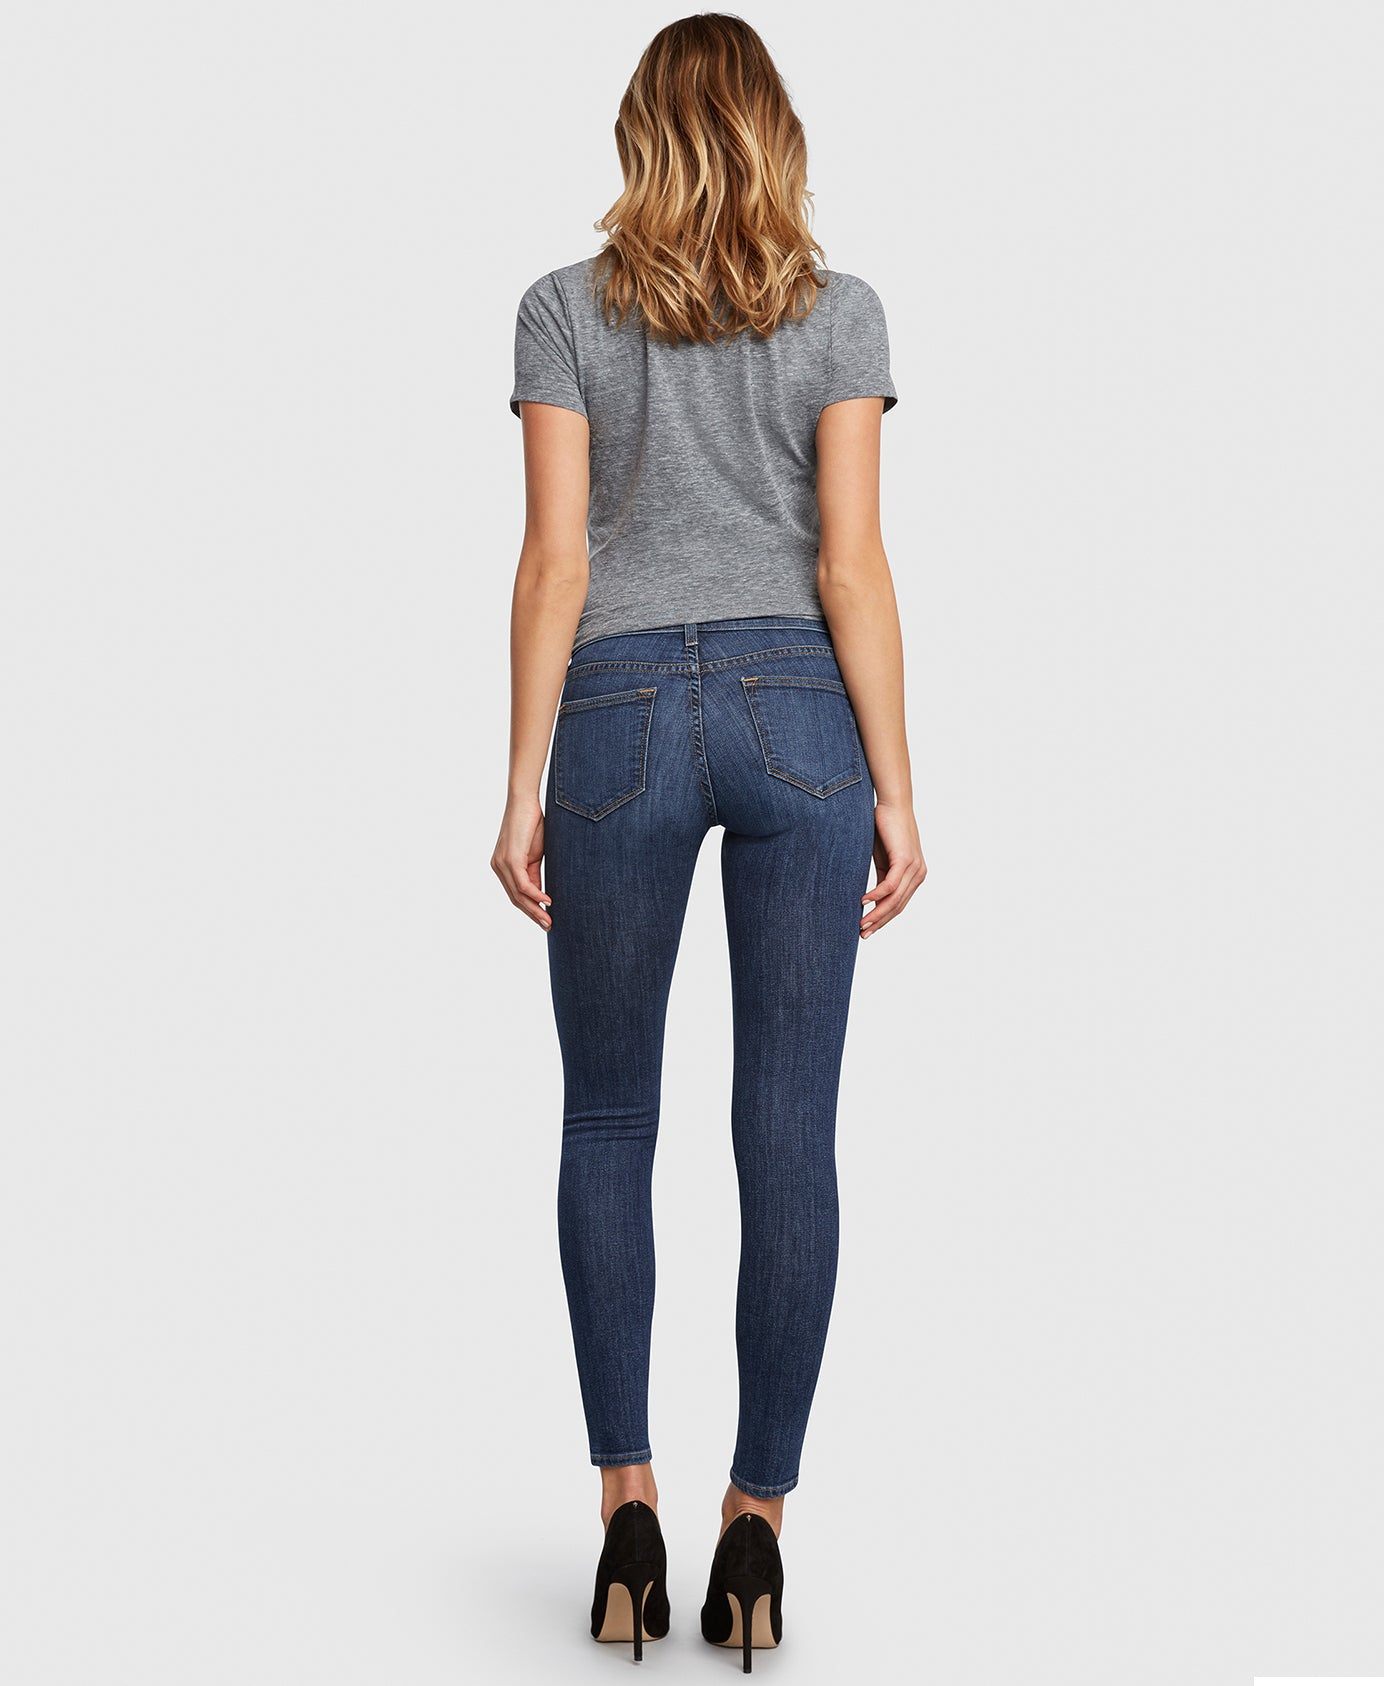 Principle DREAMER in Fastlane skinny jeans with holes back